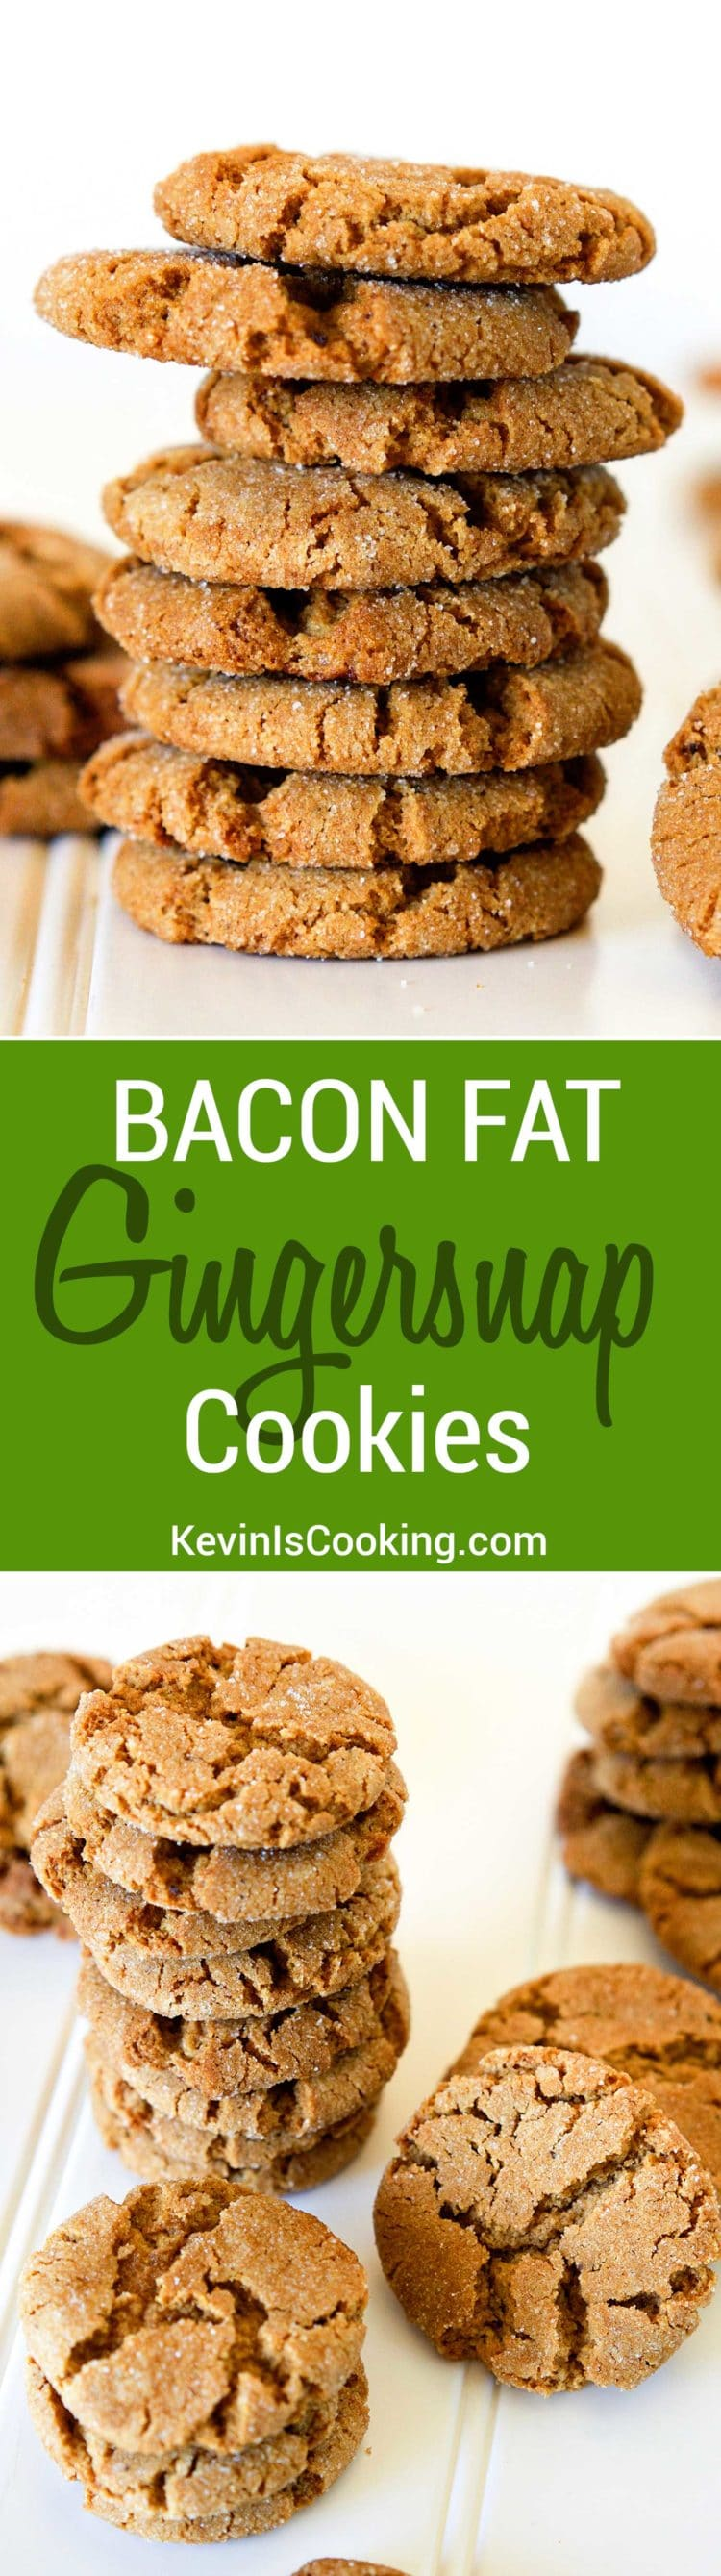 Bacon fat subs for butter (It's subtle smokey undertones add a richness) with molasses and ginger to make a taste sensation cookie. This will be your new favorite cookie, and this coming from a true chocaholic!